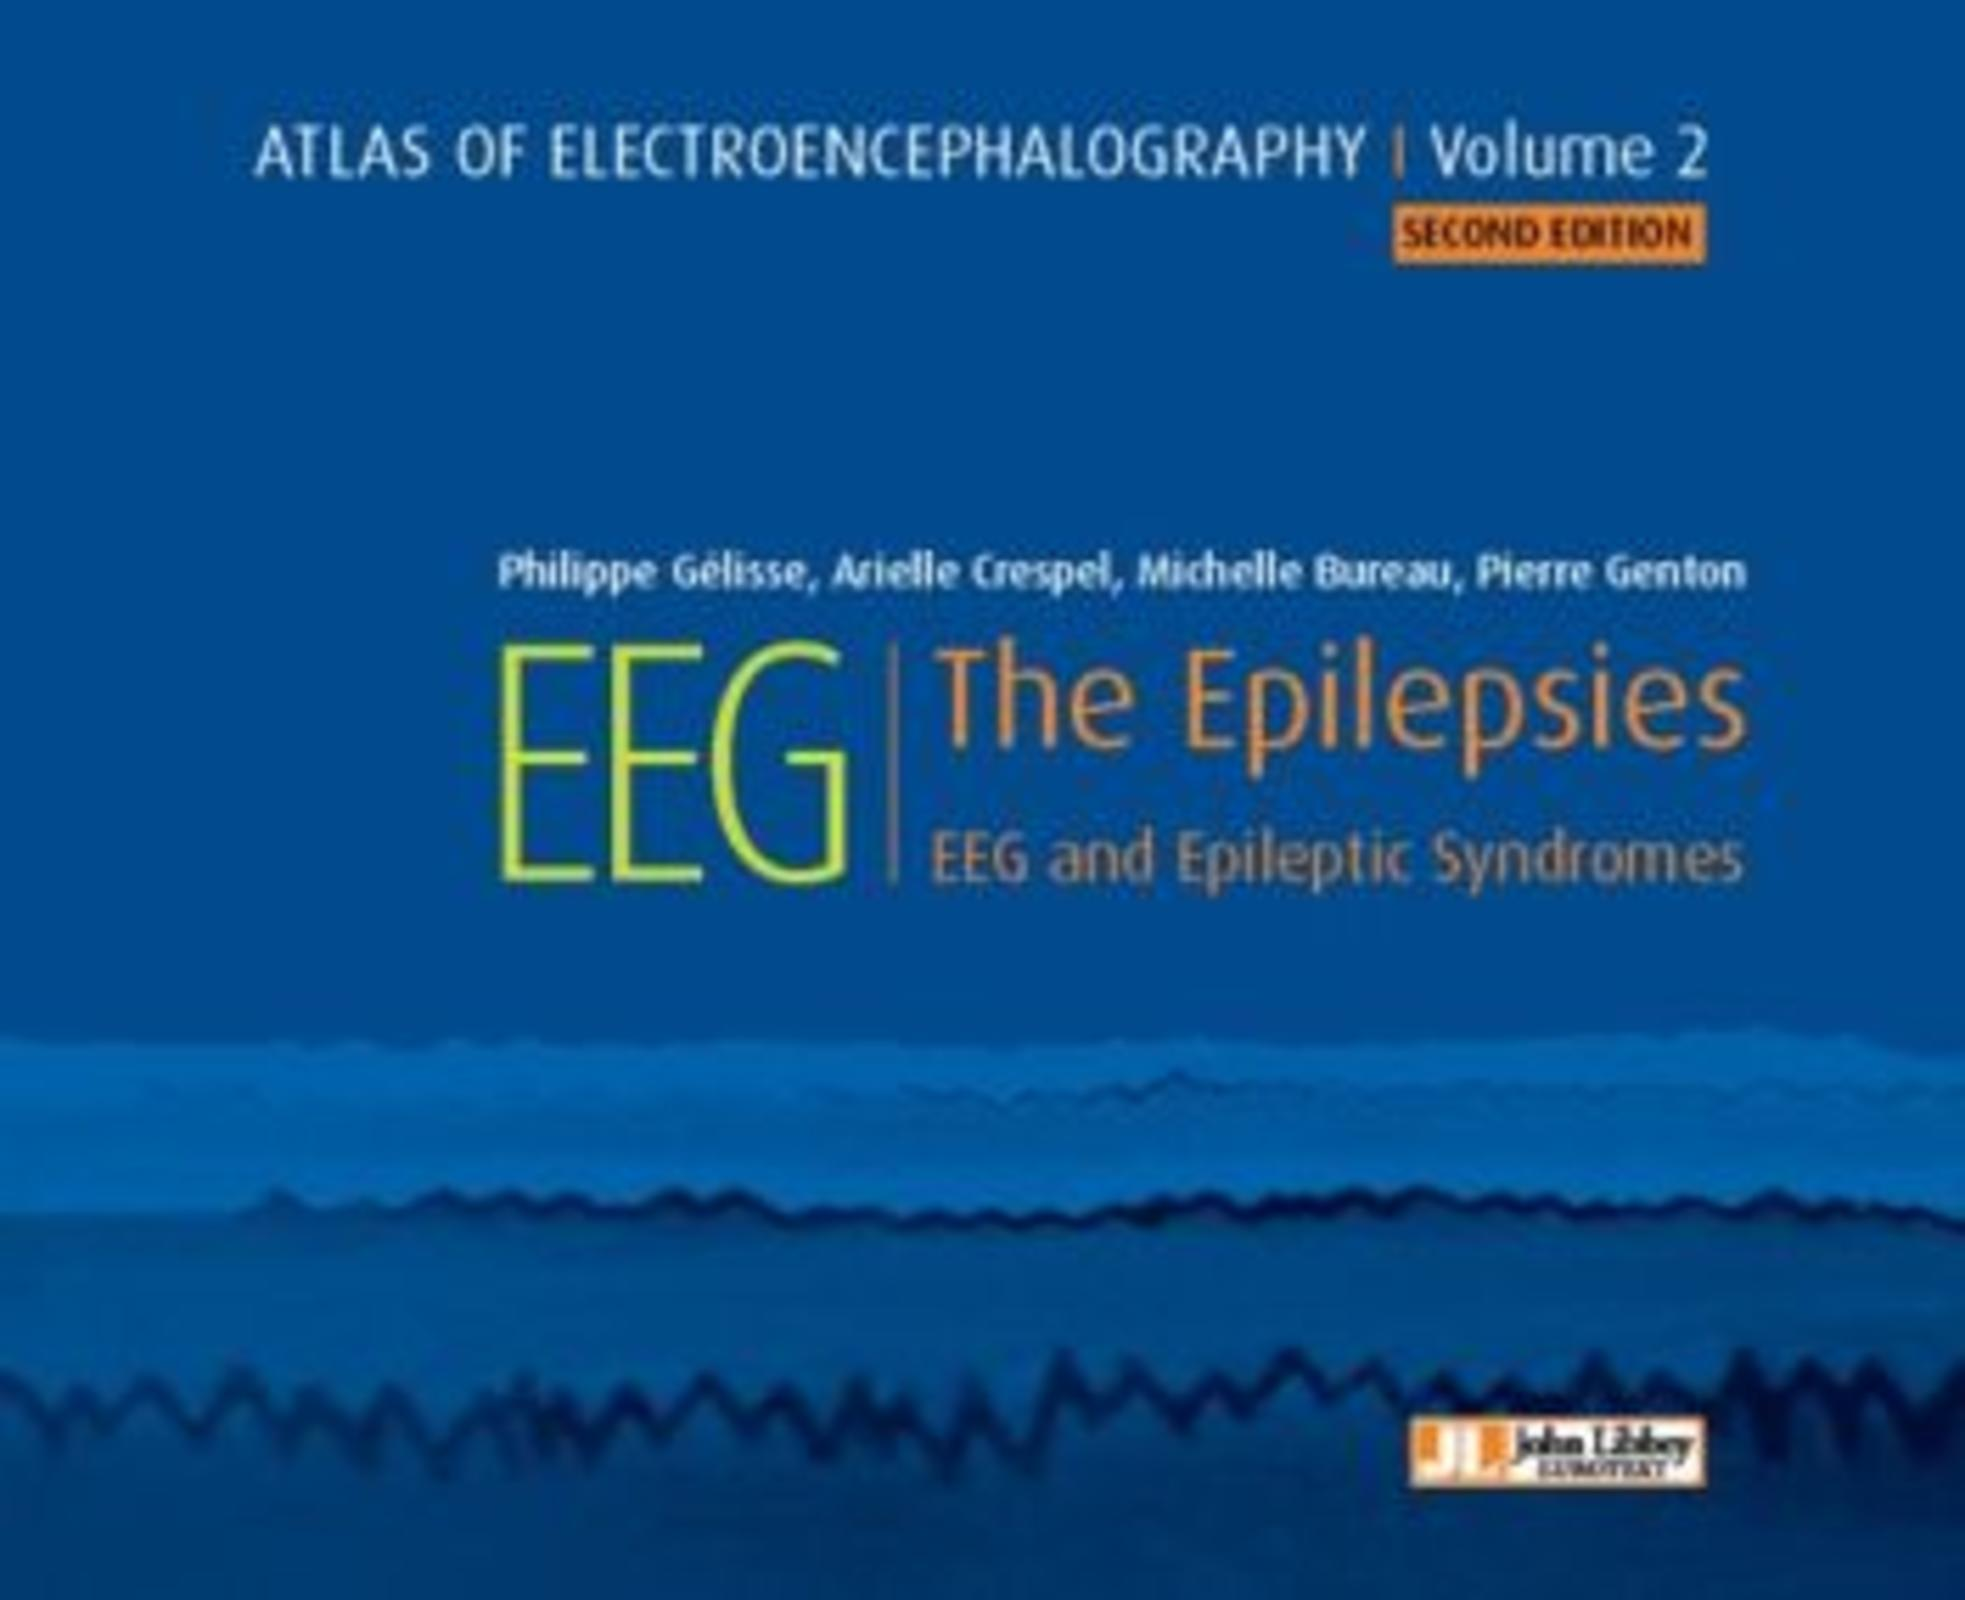 EEG - The Epilepsies